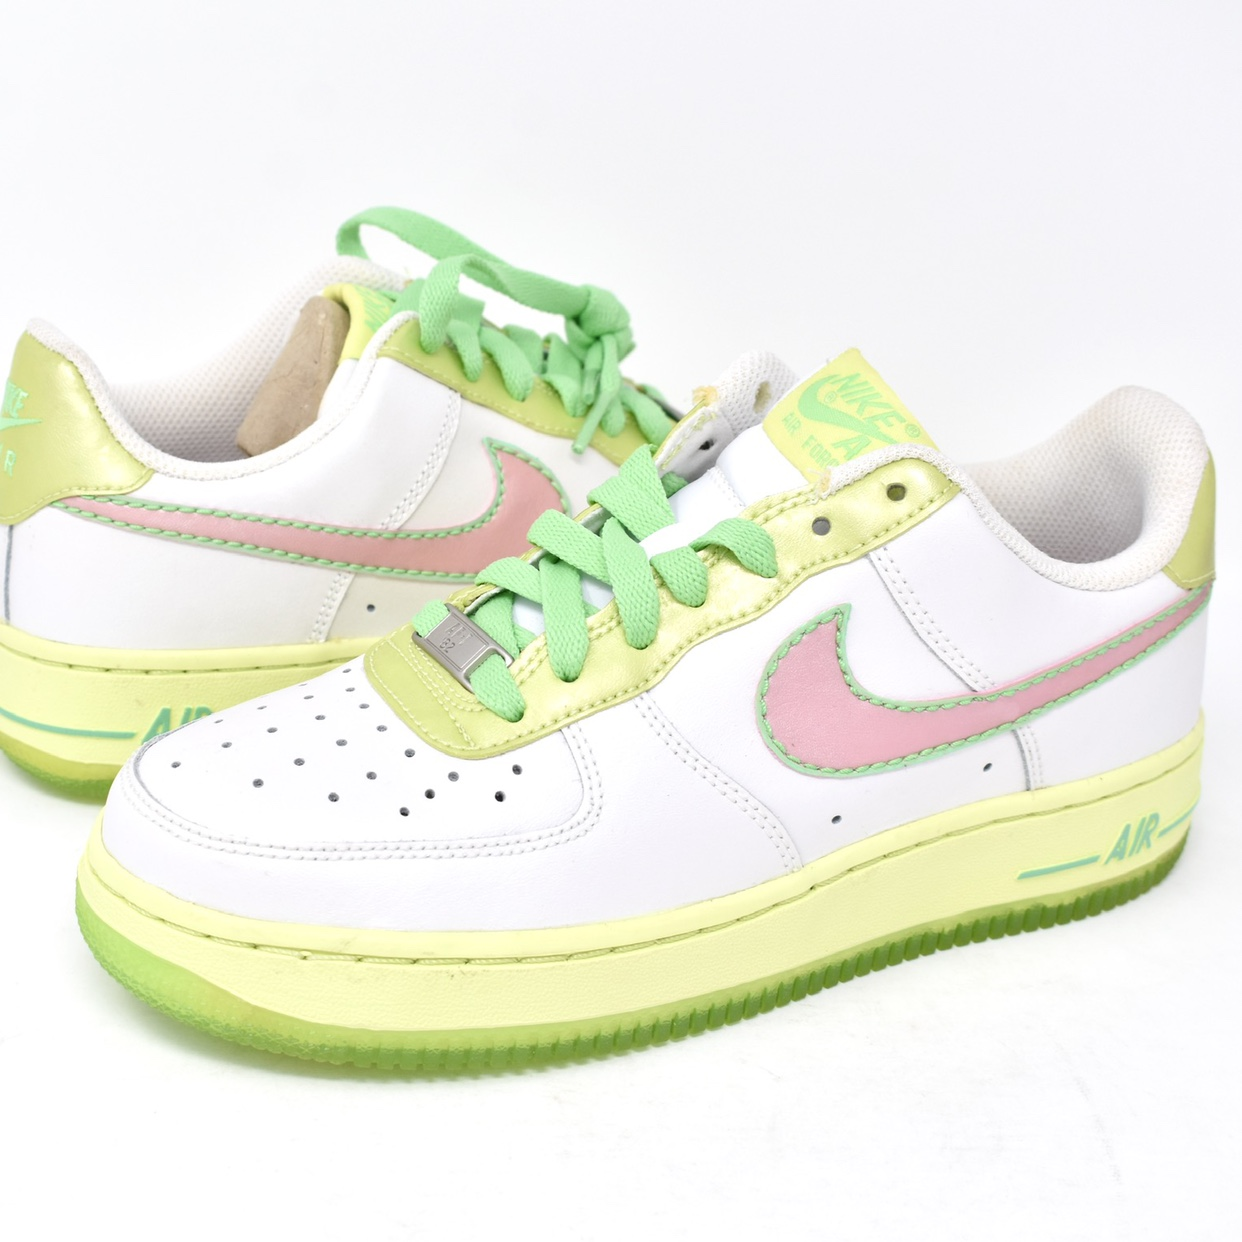 2008 Nike Air Force 1 Low Perfect Pink